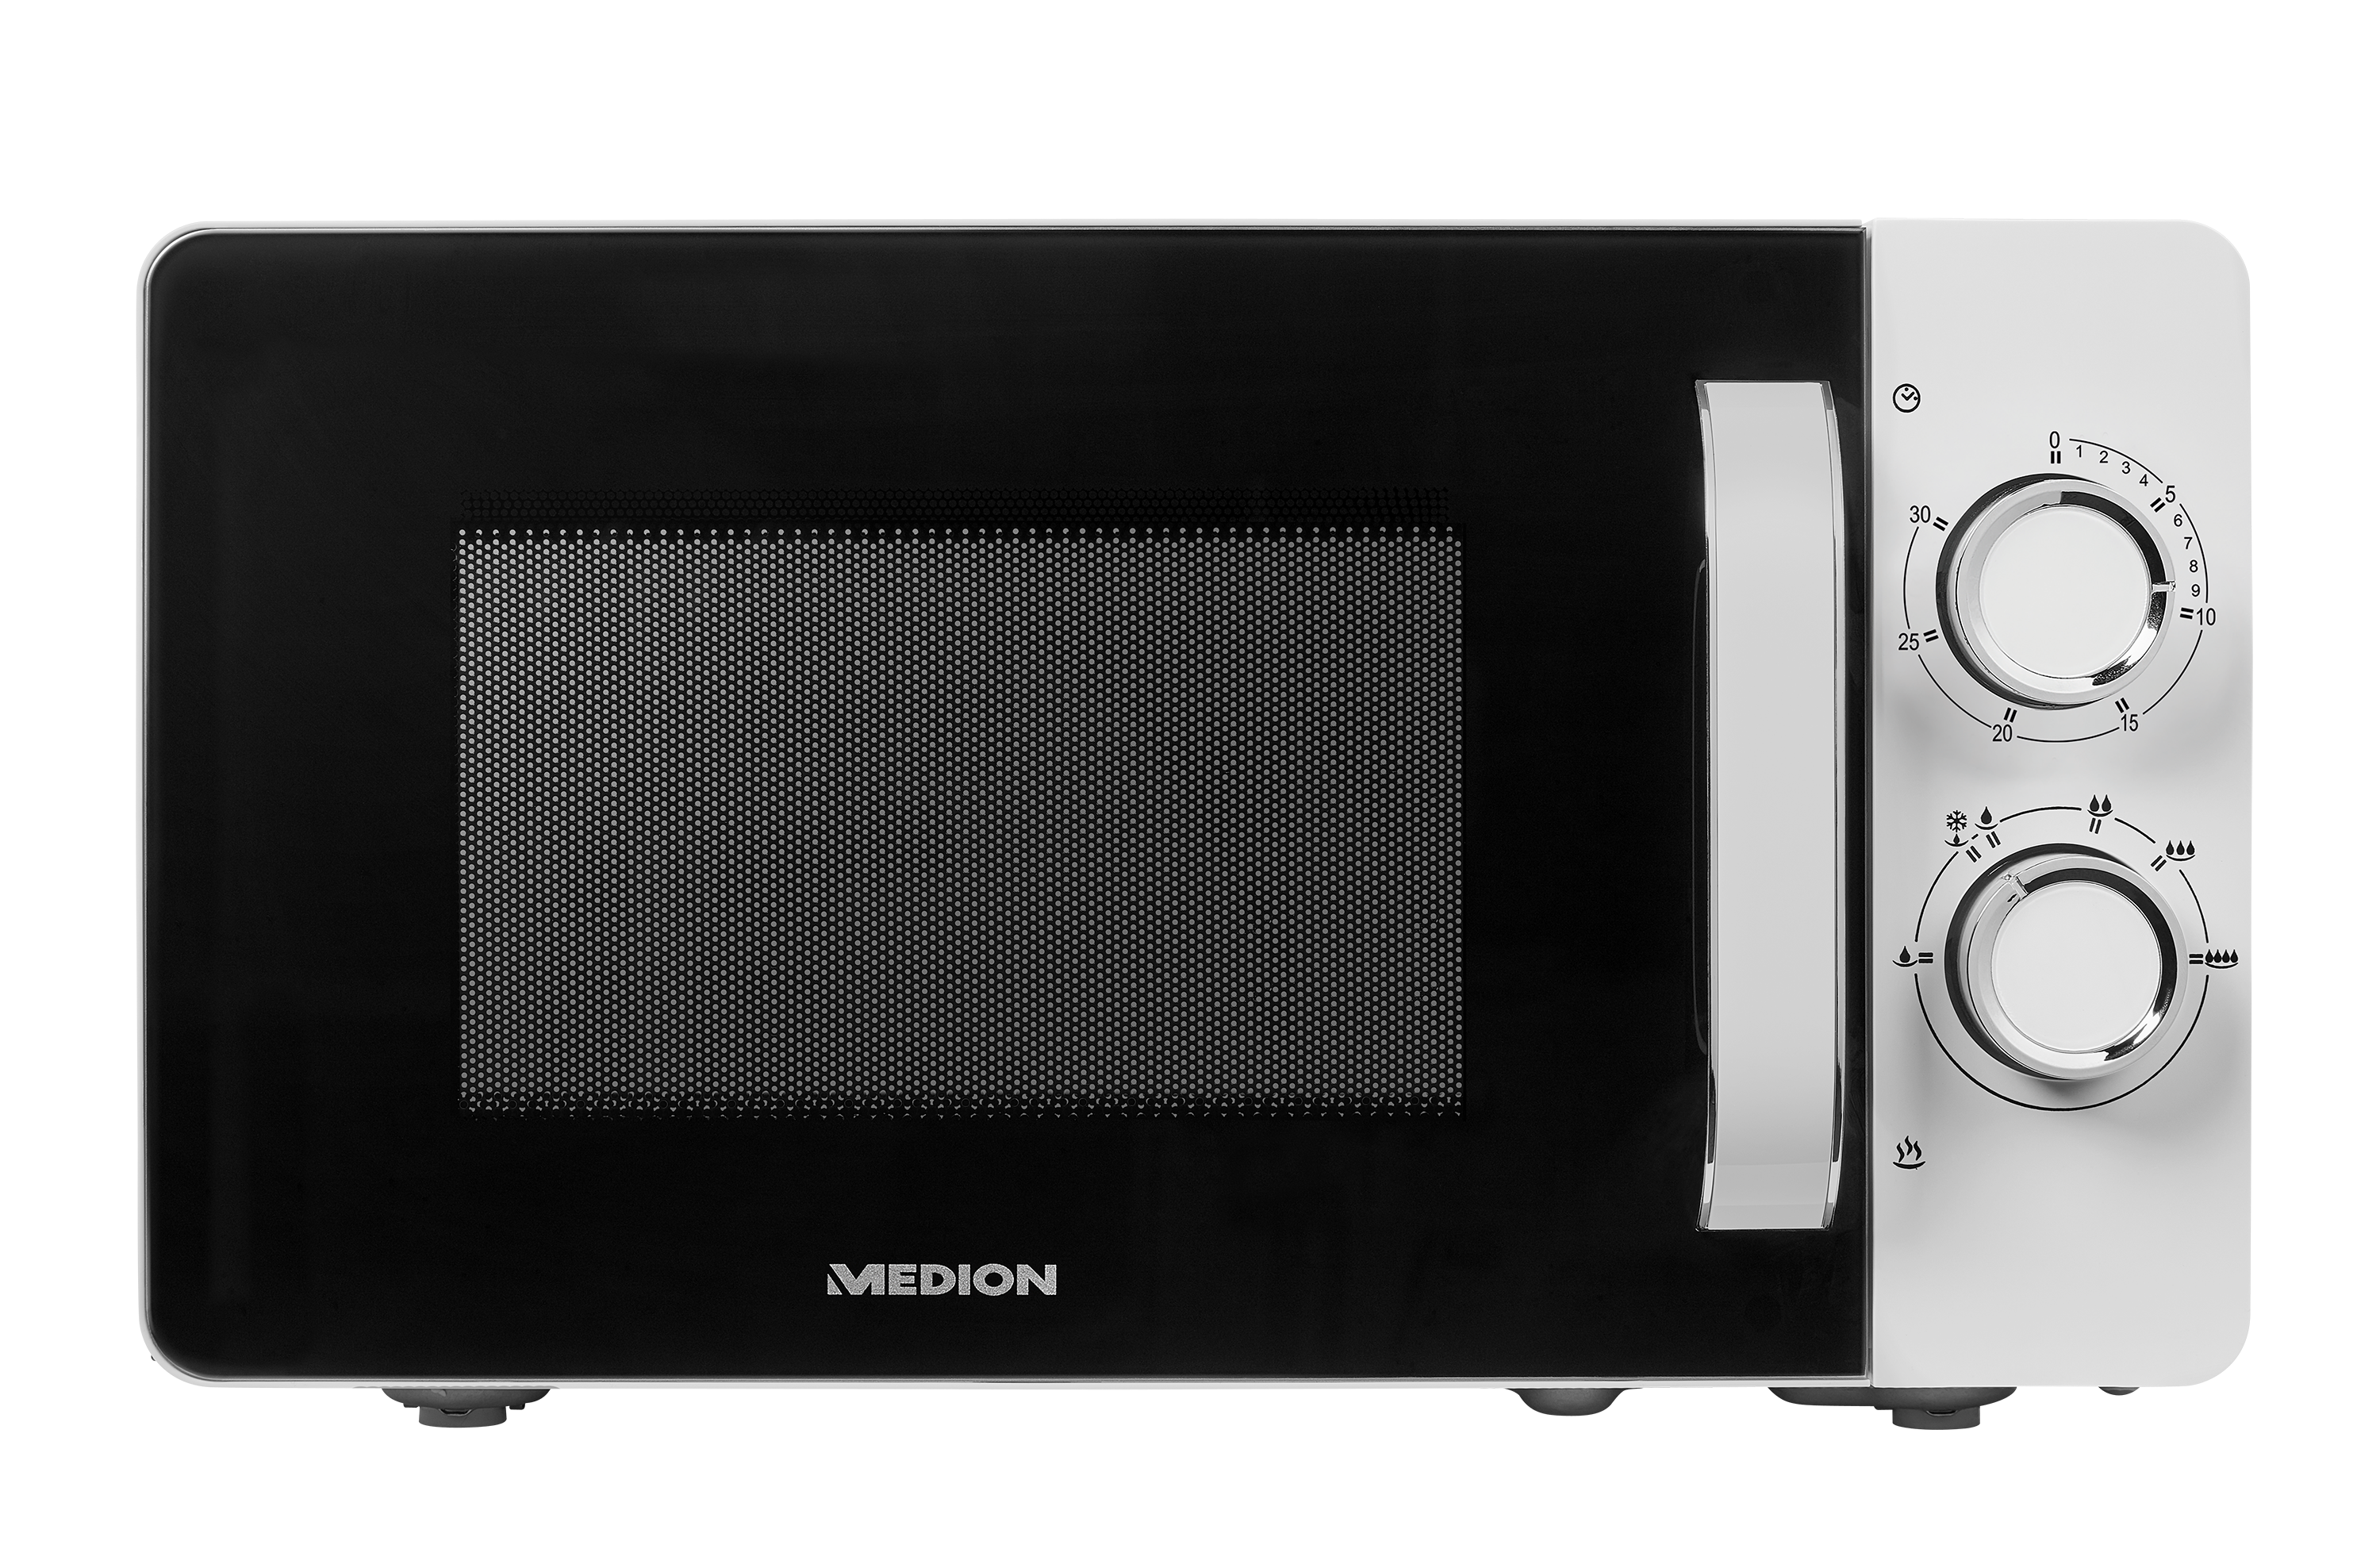 Cuisine Four Micro Onde medion® four micro-ondes 17 litres md 18687 blanc